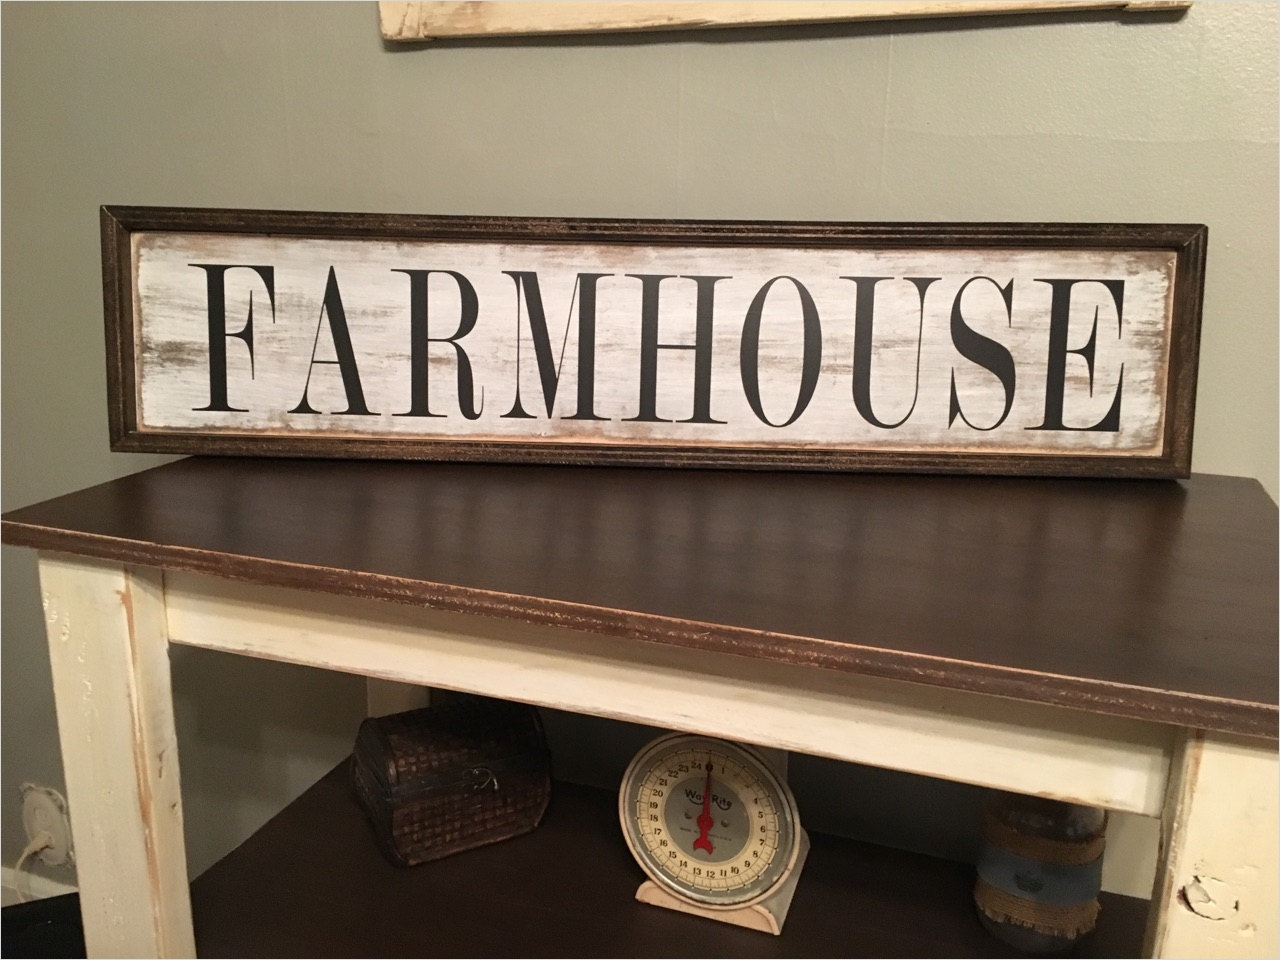 44 Gorgeous Farmhouse Wall Decor 51 Farmhouse Sign Farmhouse Wall Decor Rustic Wall Decor Rustic Home Decor Farmhouse Style 4